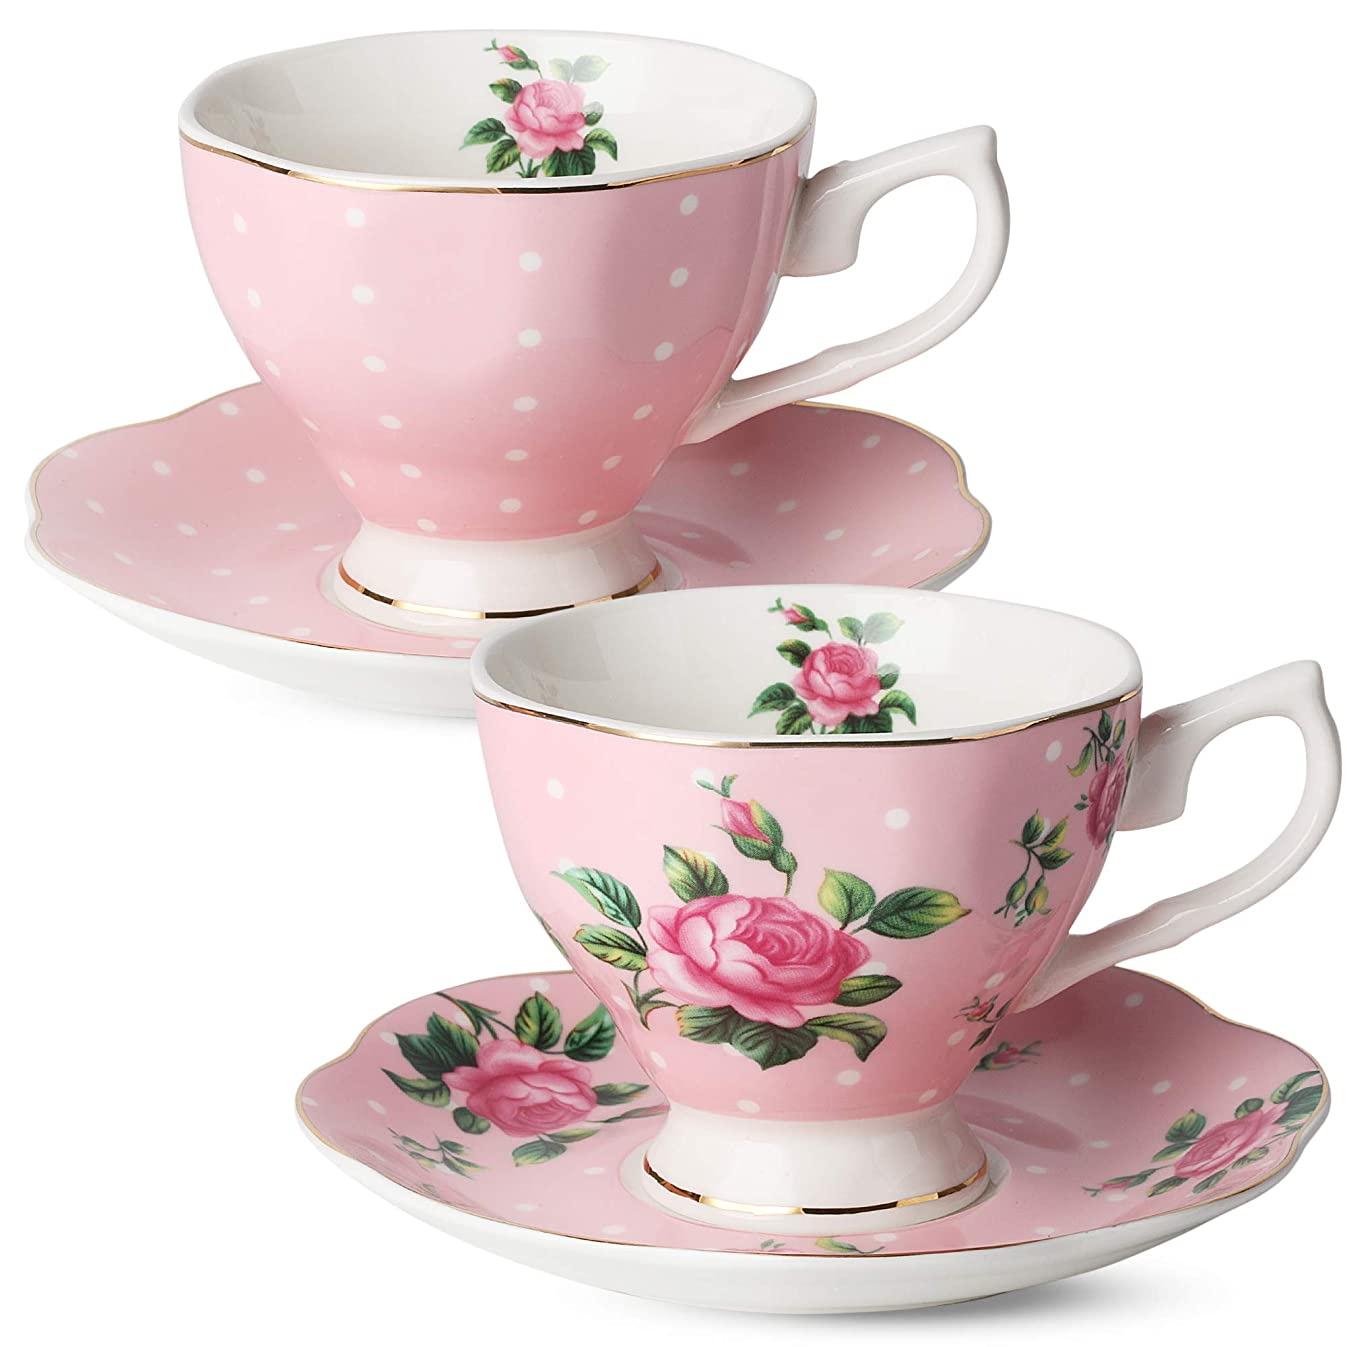 BT?T- Floral Tea Cups and Saucers, Set of 2 (Pink - 8 oz) with Gold Trim and Gift Box, Coffee Cups, Floral Tea Cup Set, British Tea Cups, Porcelain Tea Set, Tea Sets for Women, Latte Cups